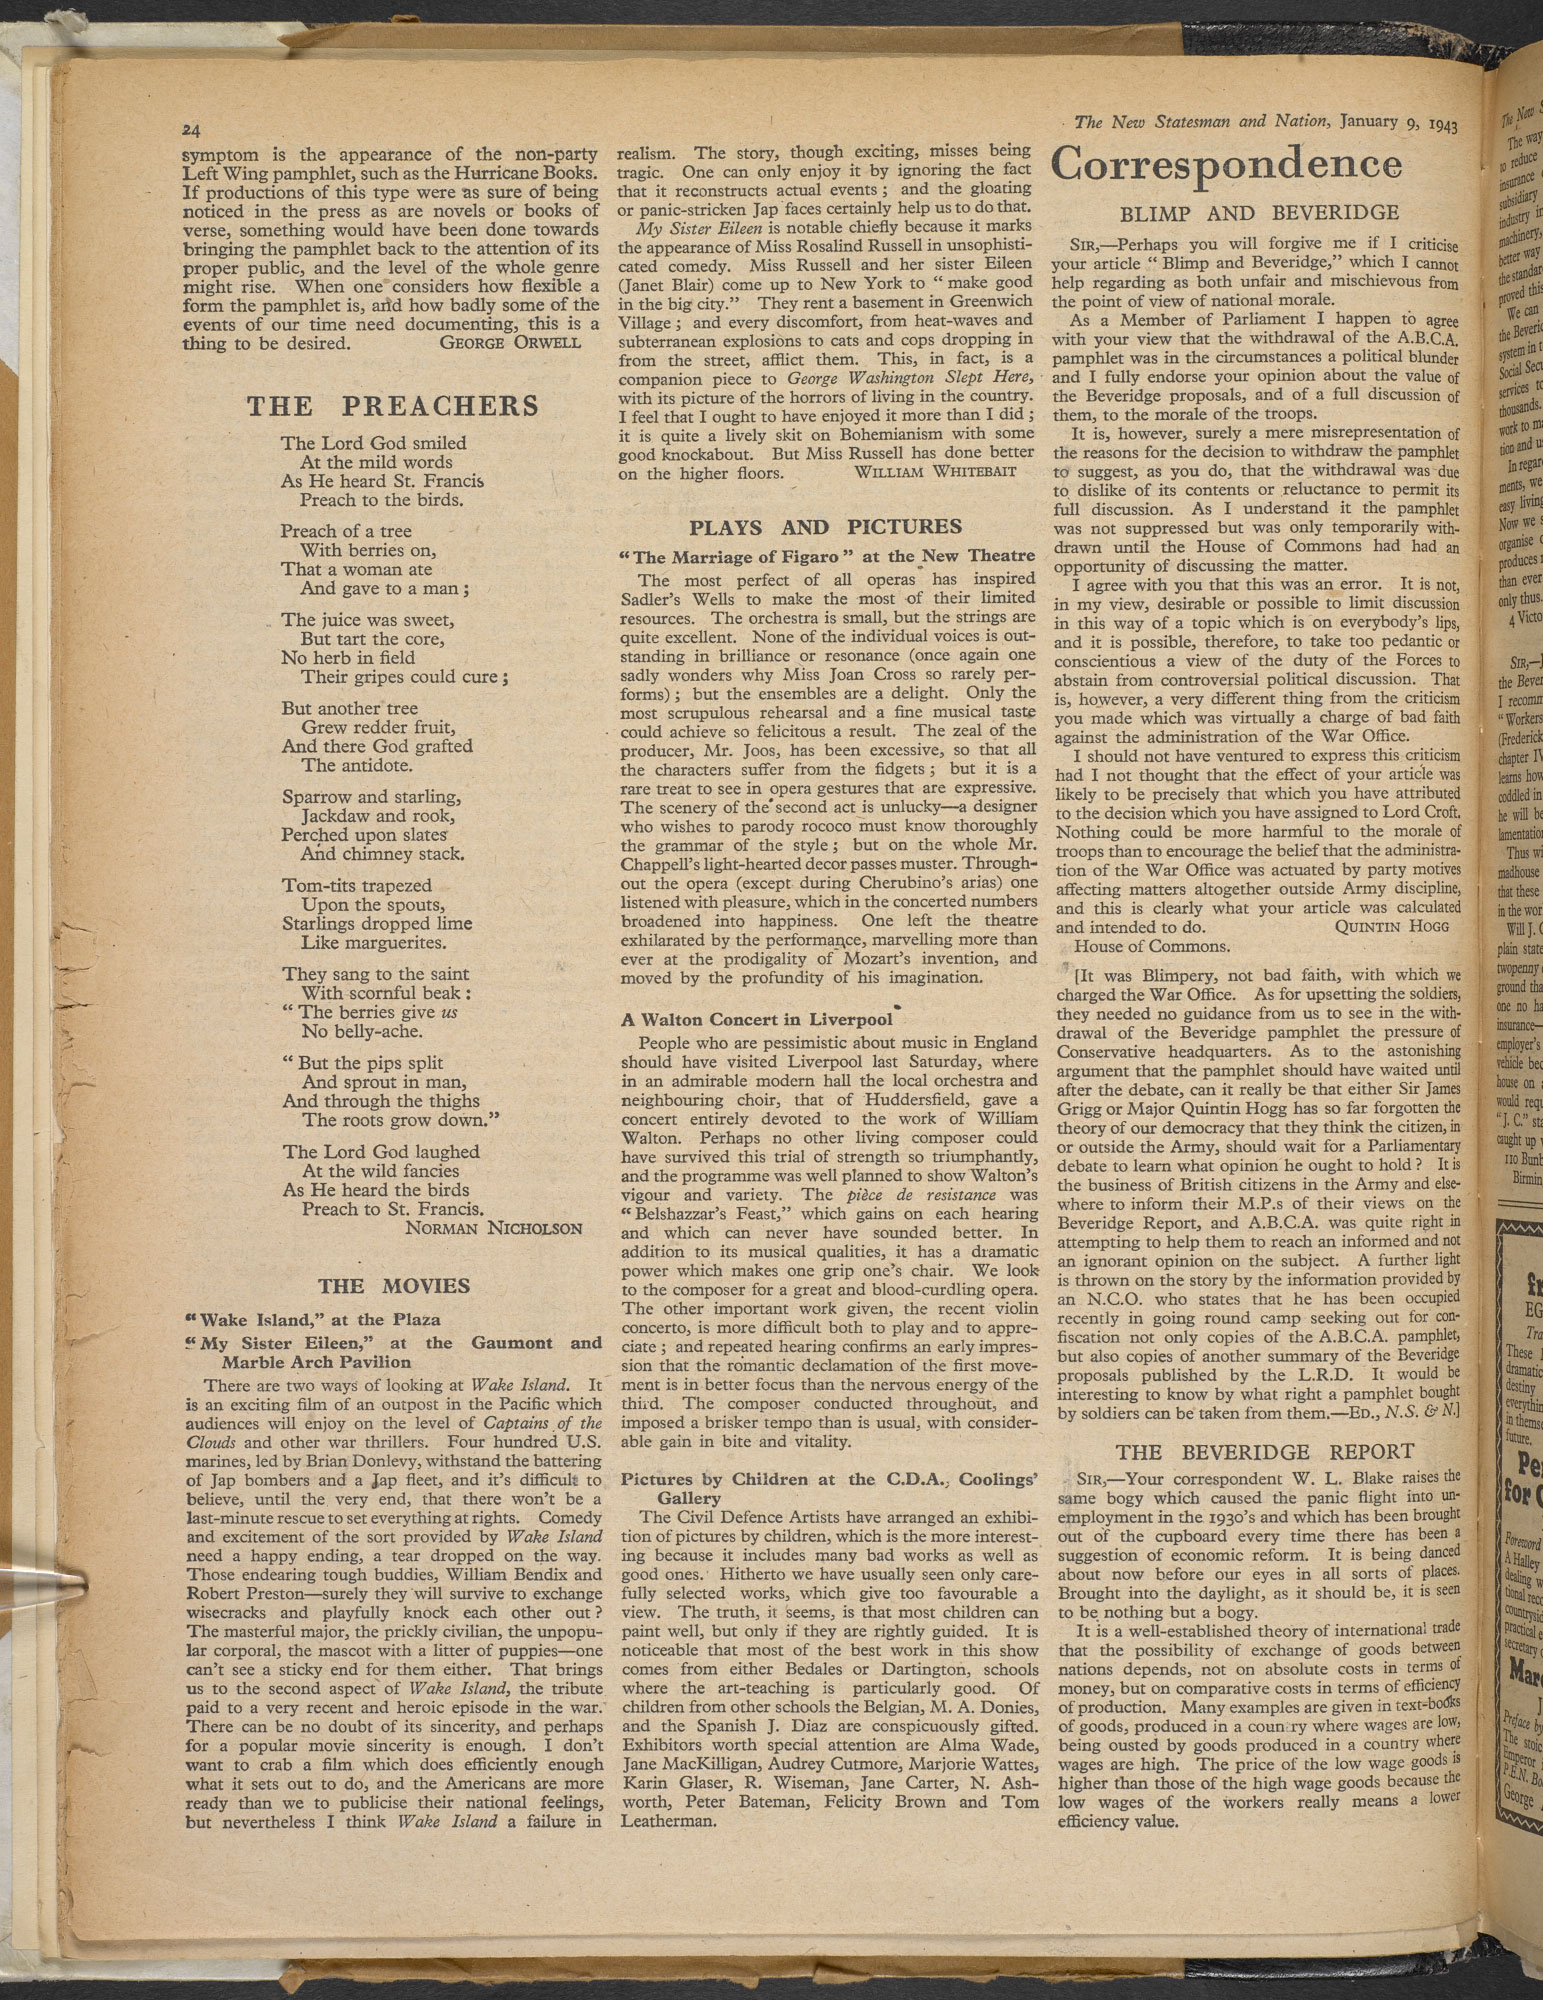 British Library's facsimile of Orwell's 'Pamphlet Literature' page 2